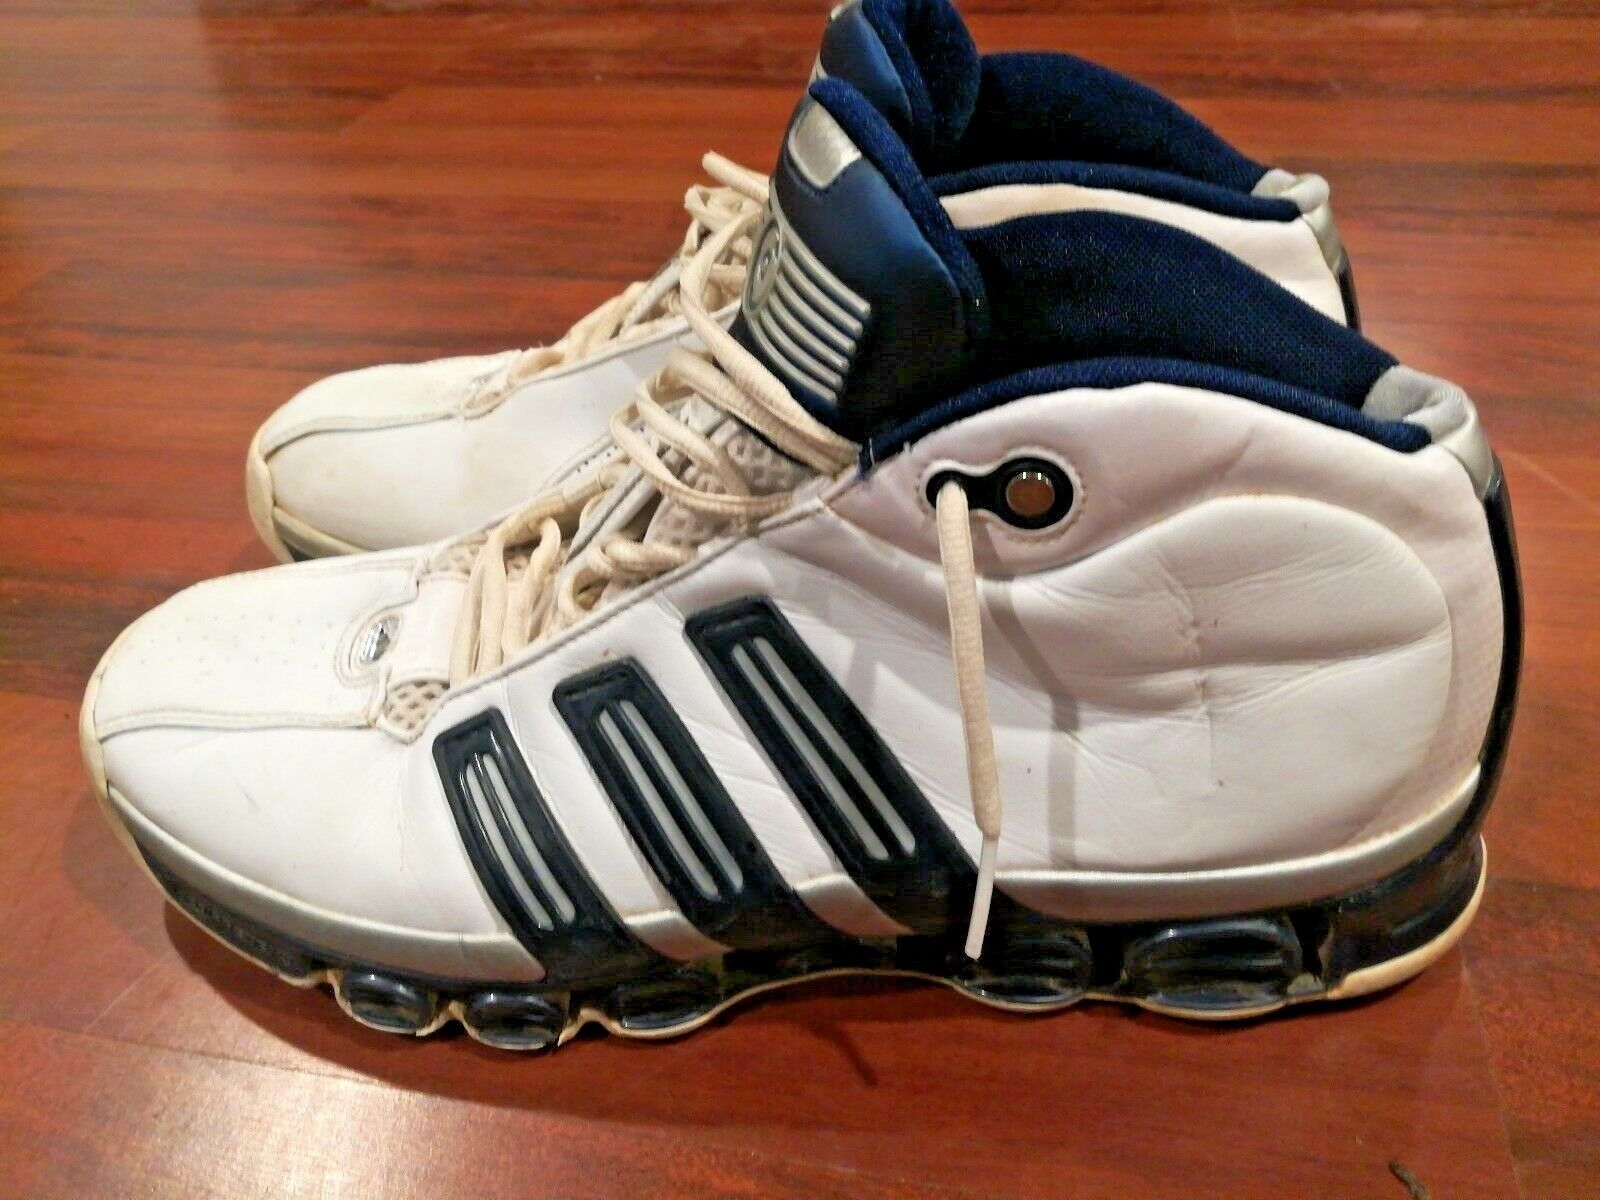 Adidas A3 Superstar Men's Basketball shoes bluee White Mid Top 2005 Size 13